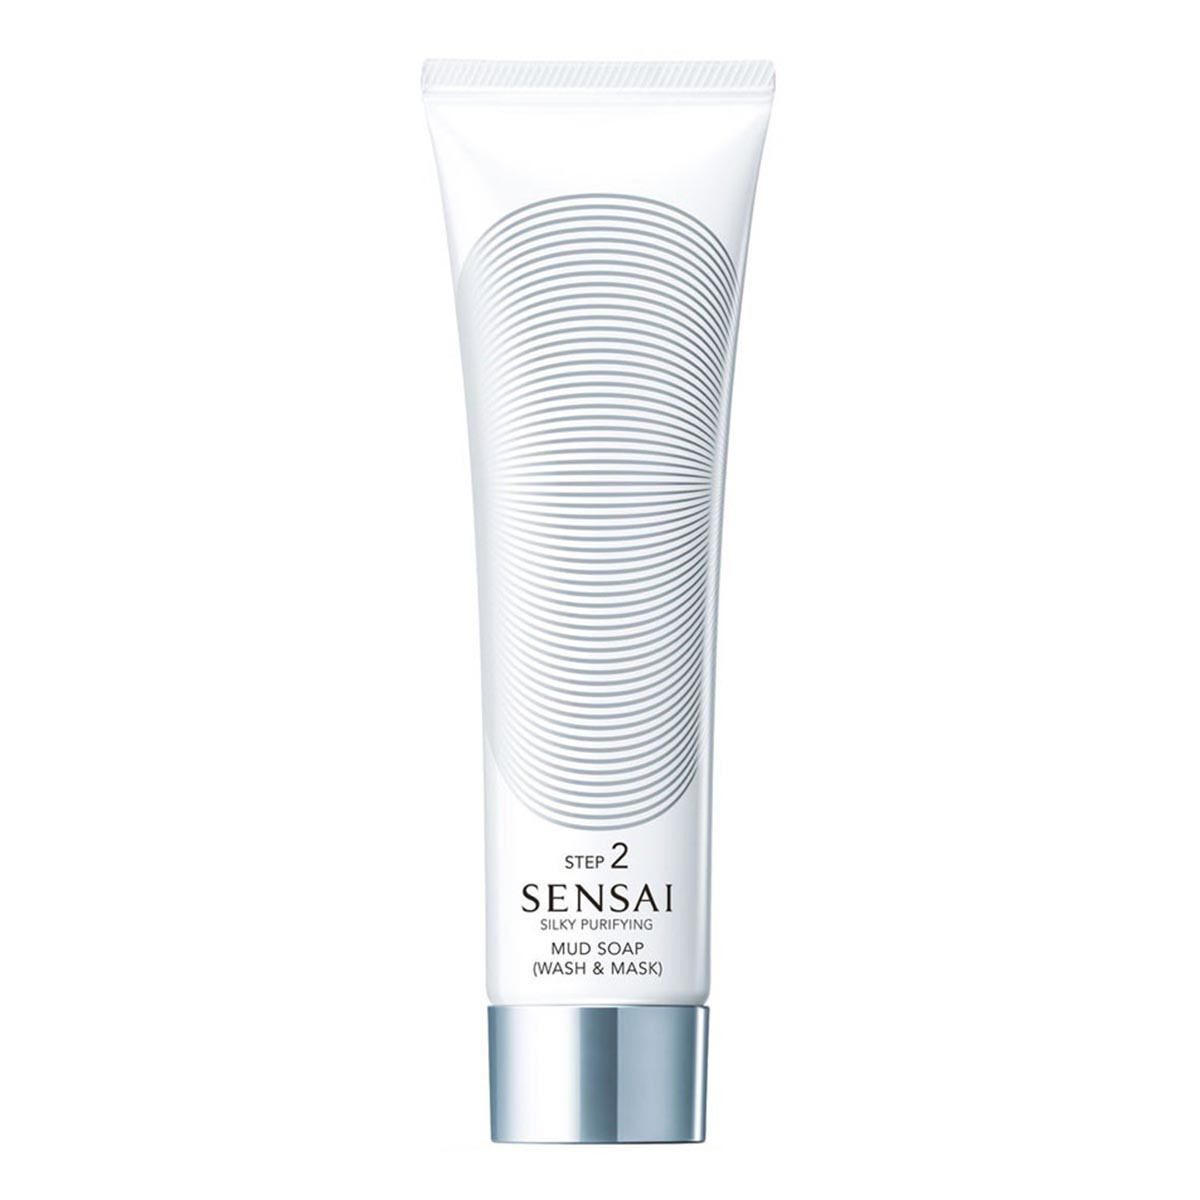 Kanebo sensai silky mud soap 125ml